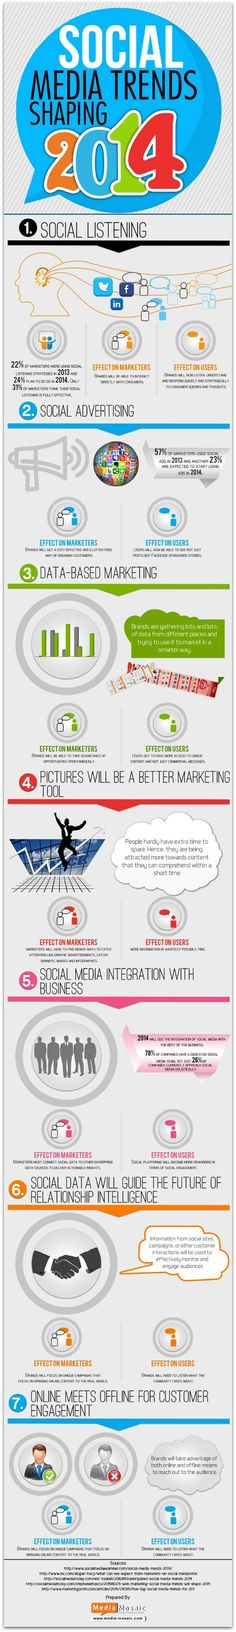 Infographic: 7 social media trends in 2014